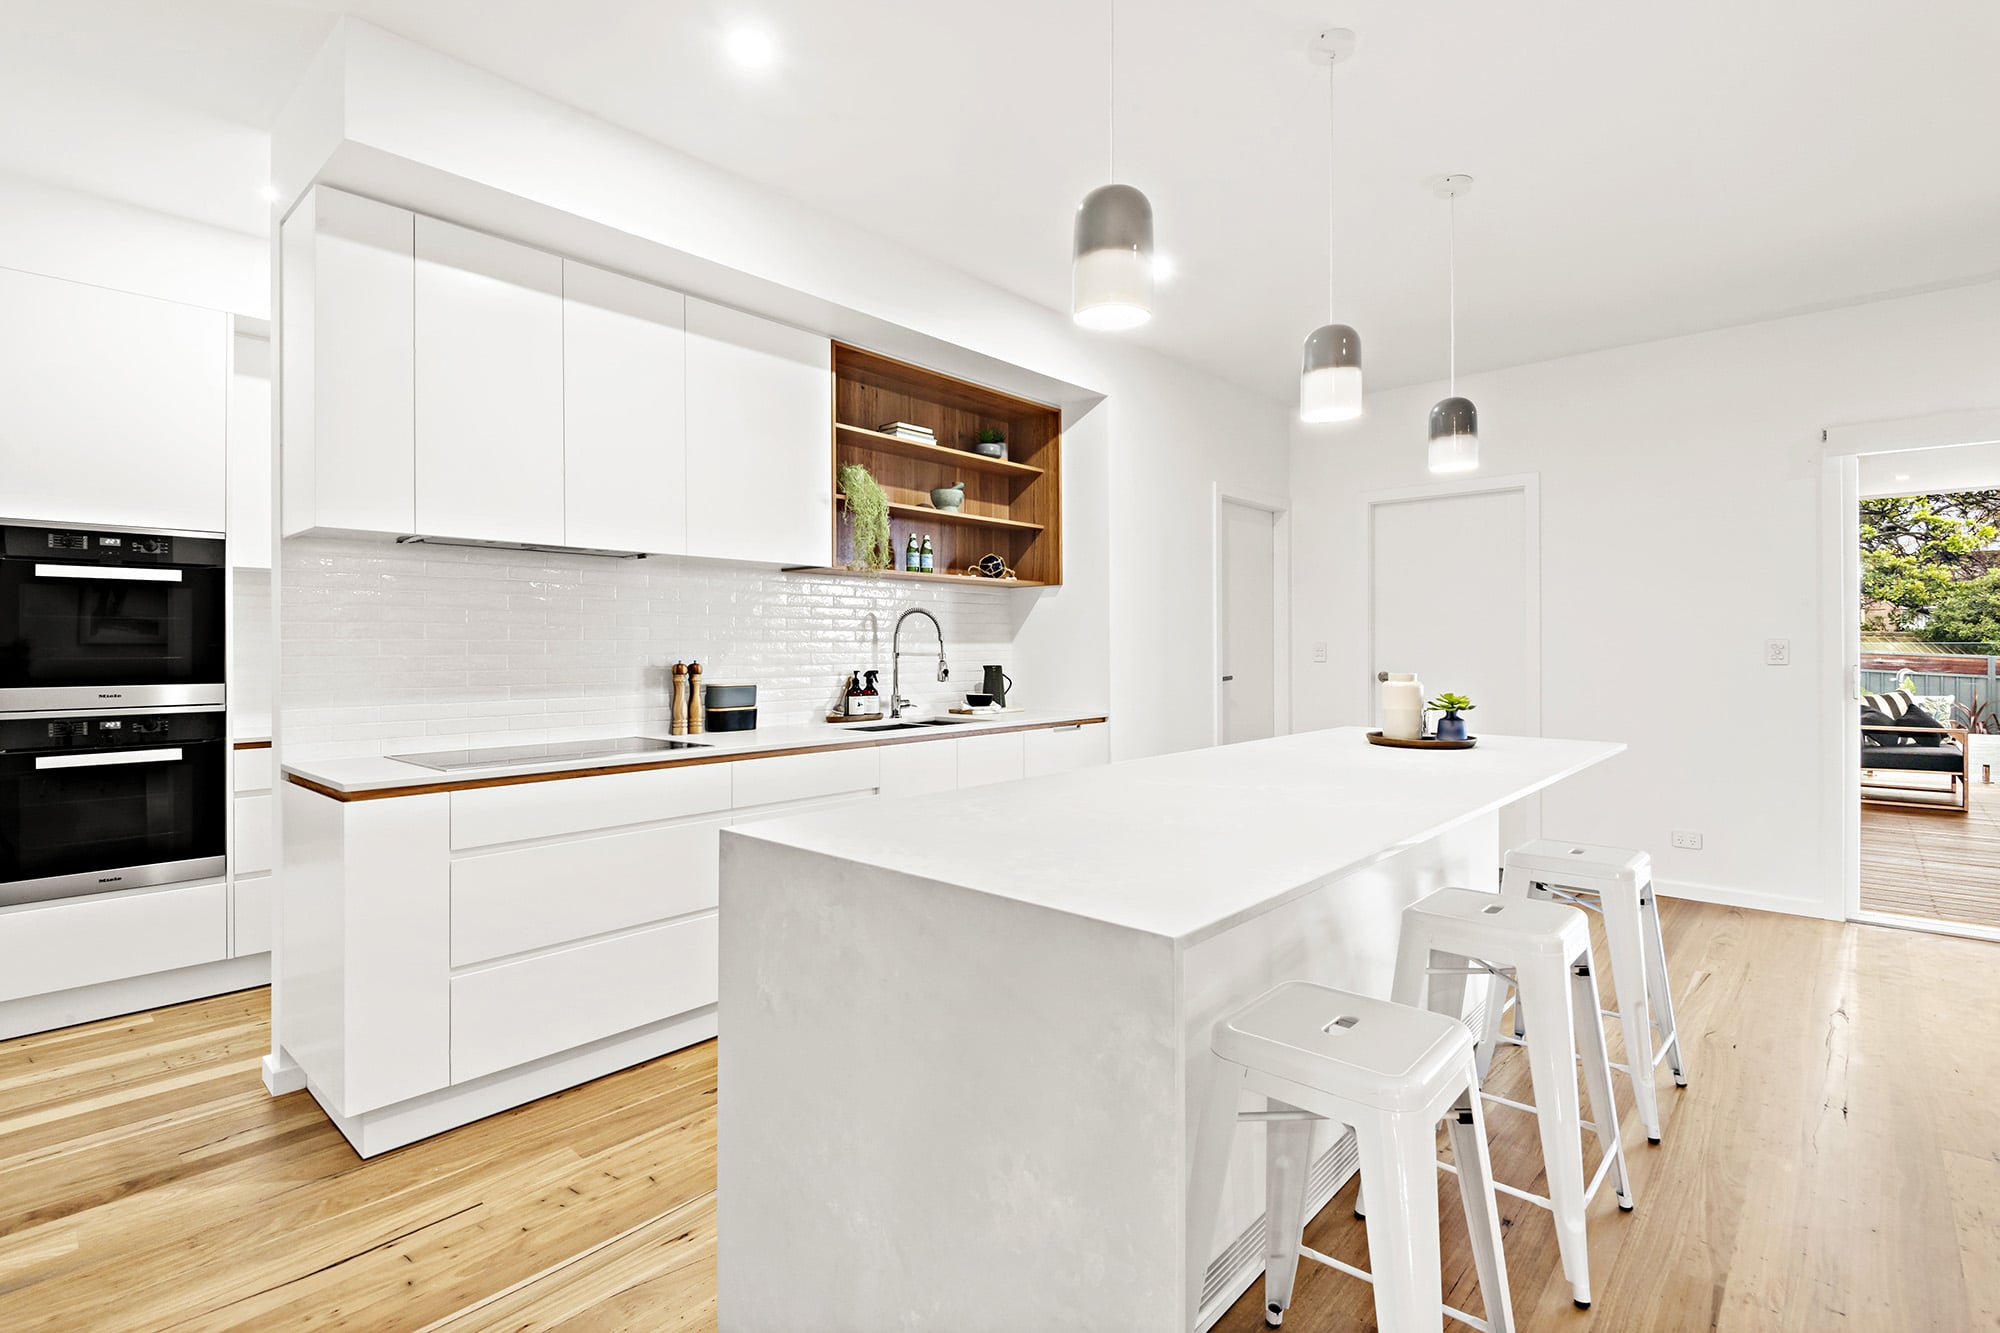 Bligh Street | Caves Beach - https://www.peonyandsilk.com.au/wp-content/uploads/2019/03/5-Kitchen.jpg